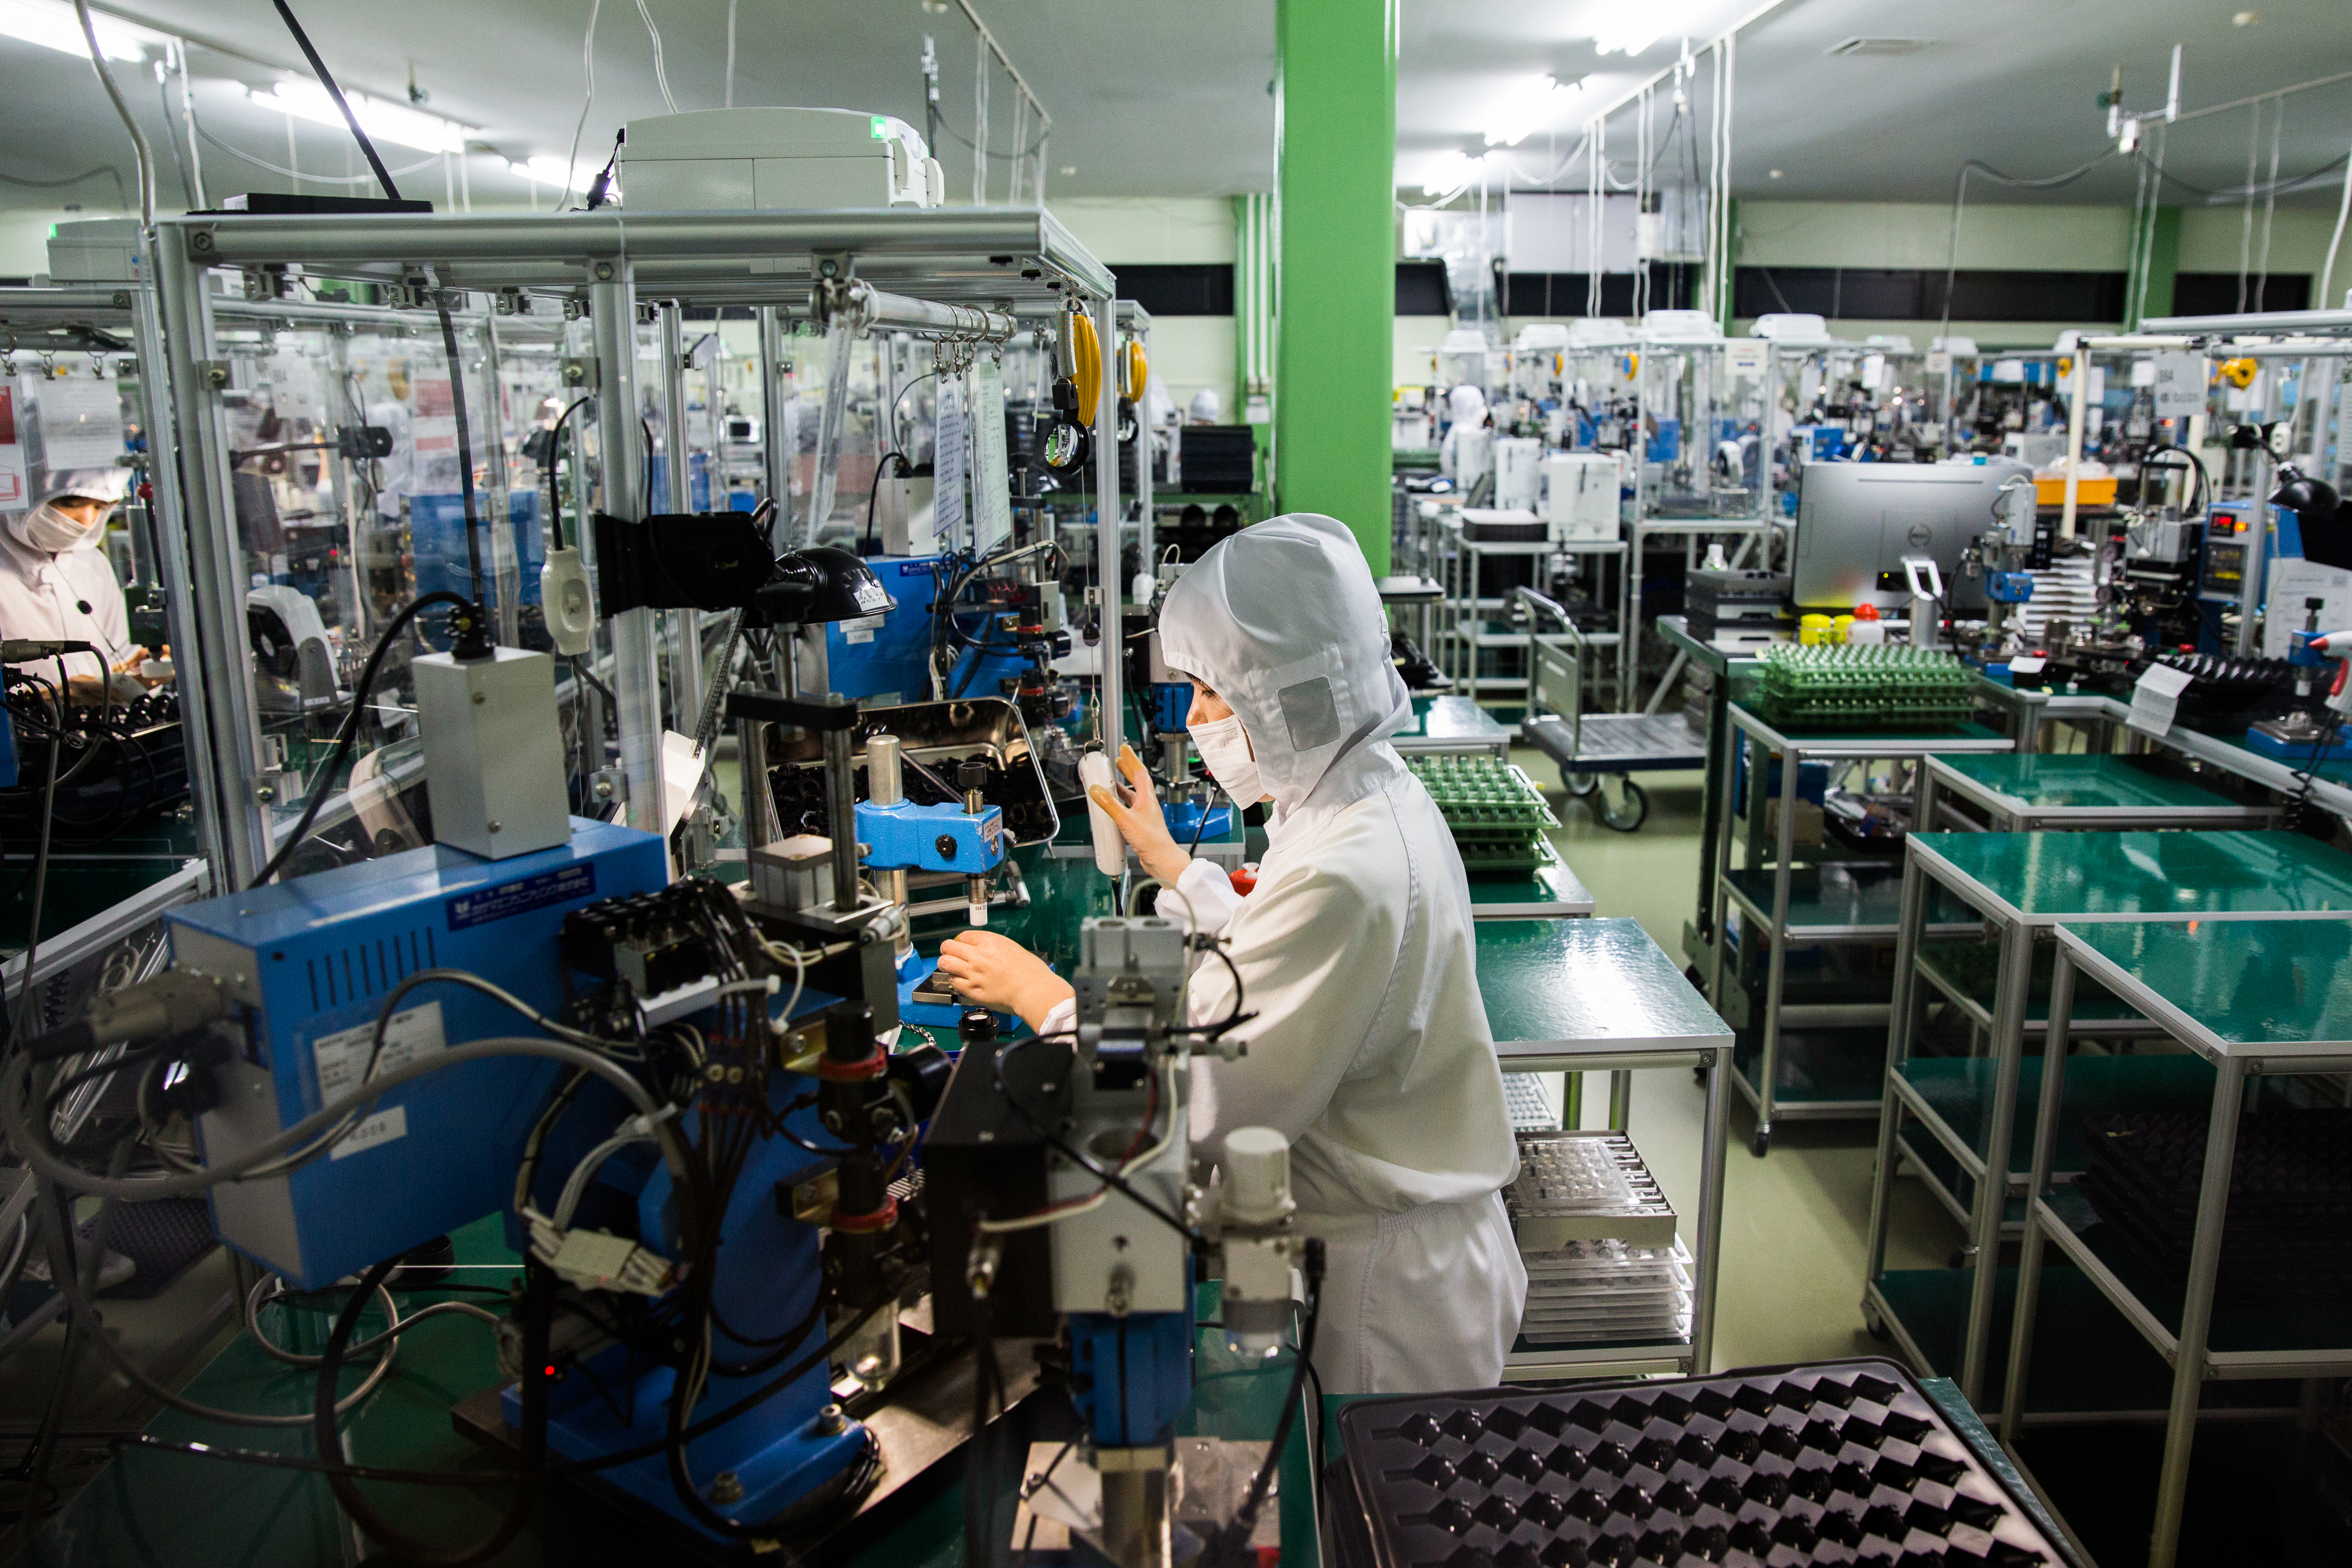 AP tours the Sigma lens factory with CEO in Japan